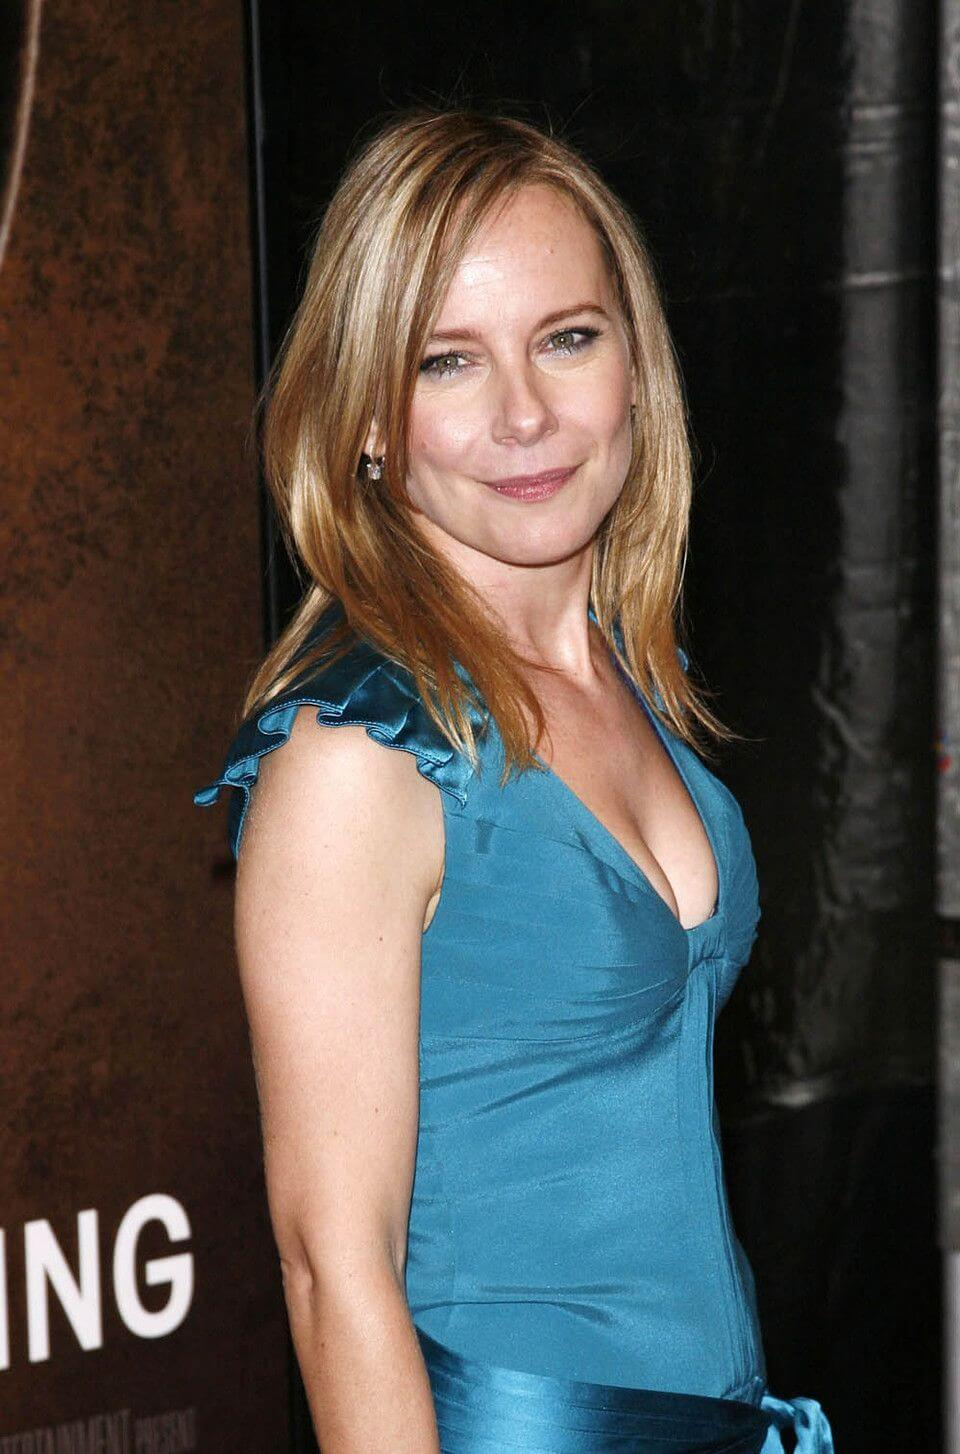 100 Images of Amy Ryan Sex